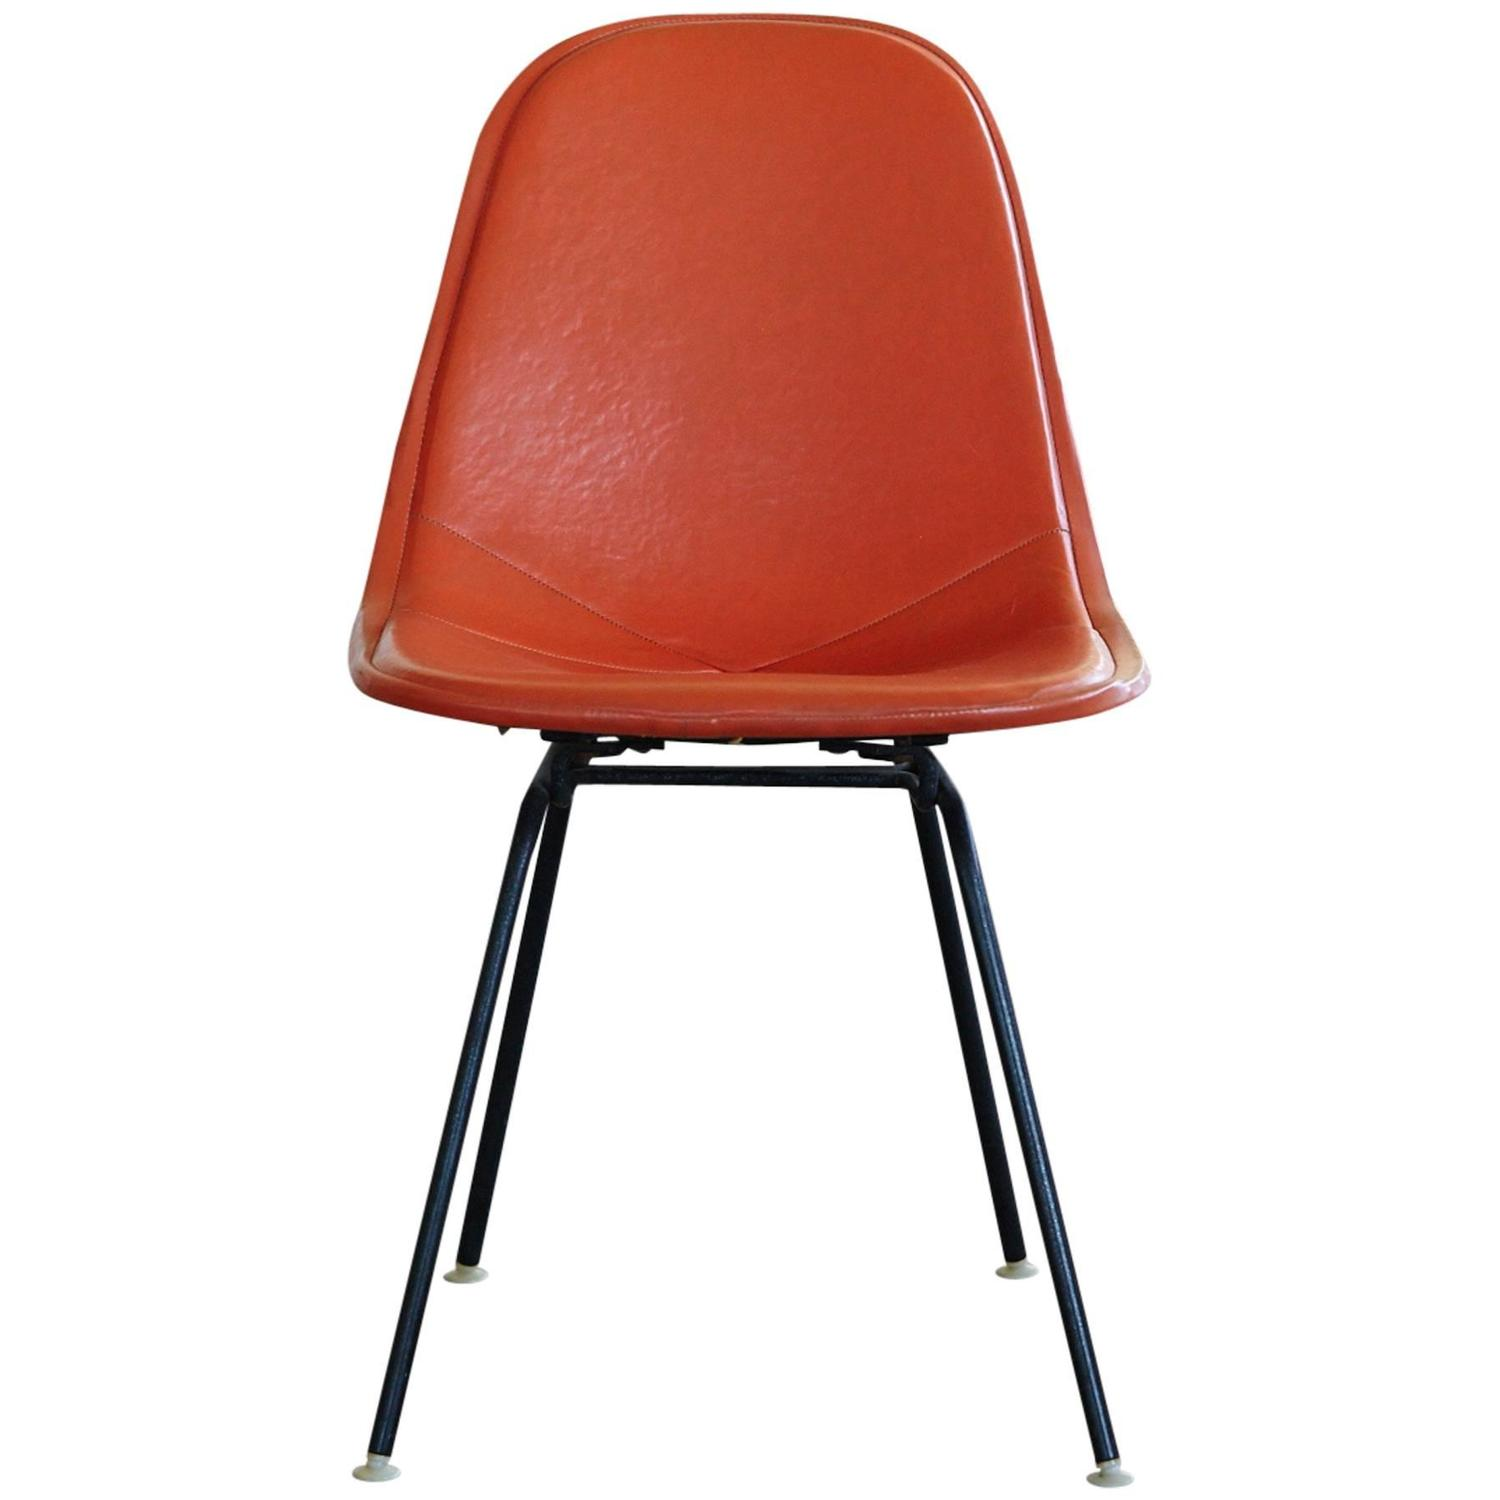 orange side chair chairs hanging from ceiling original eames dkx 1 in leather for herman miller 1960s sale at 1stdibs